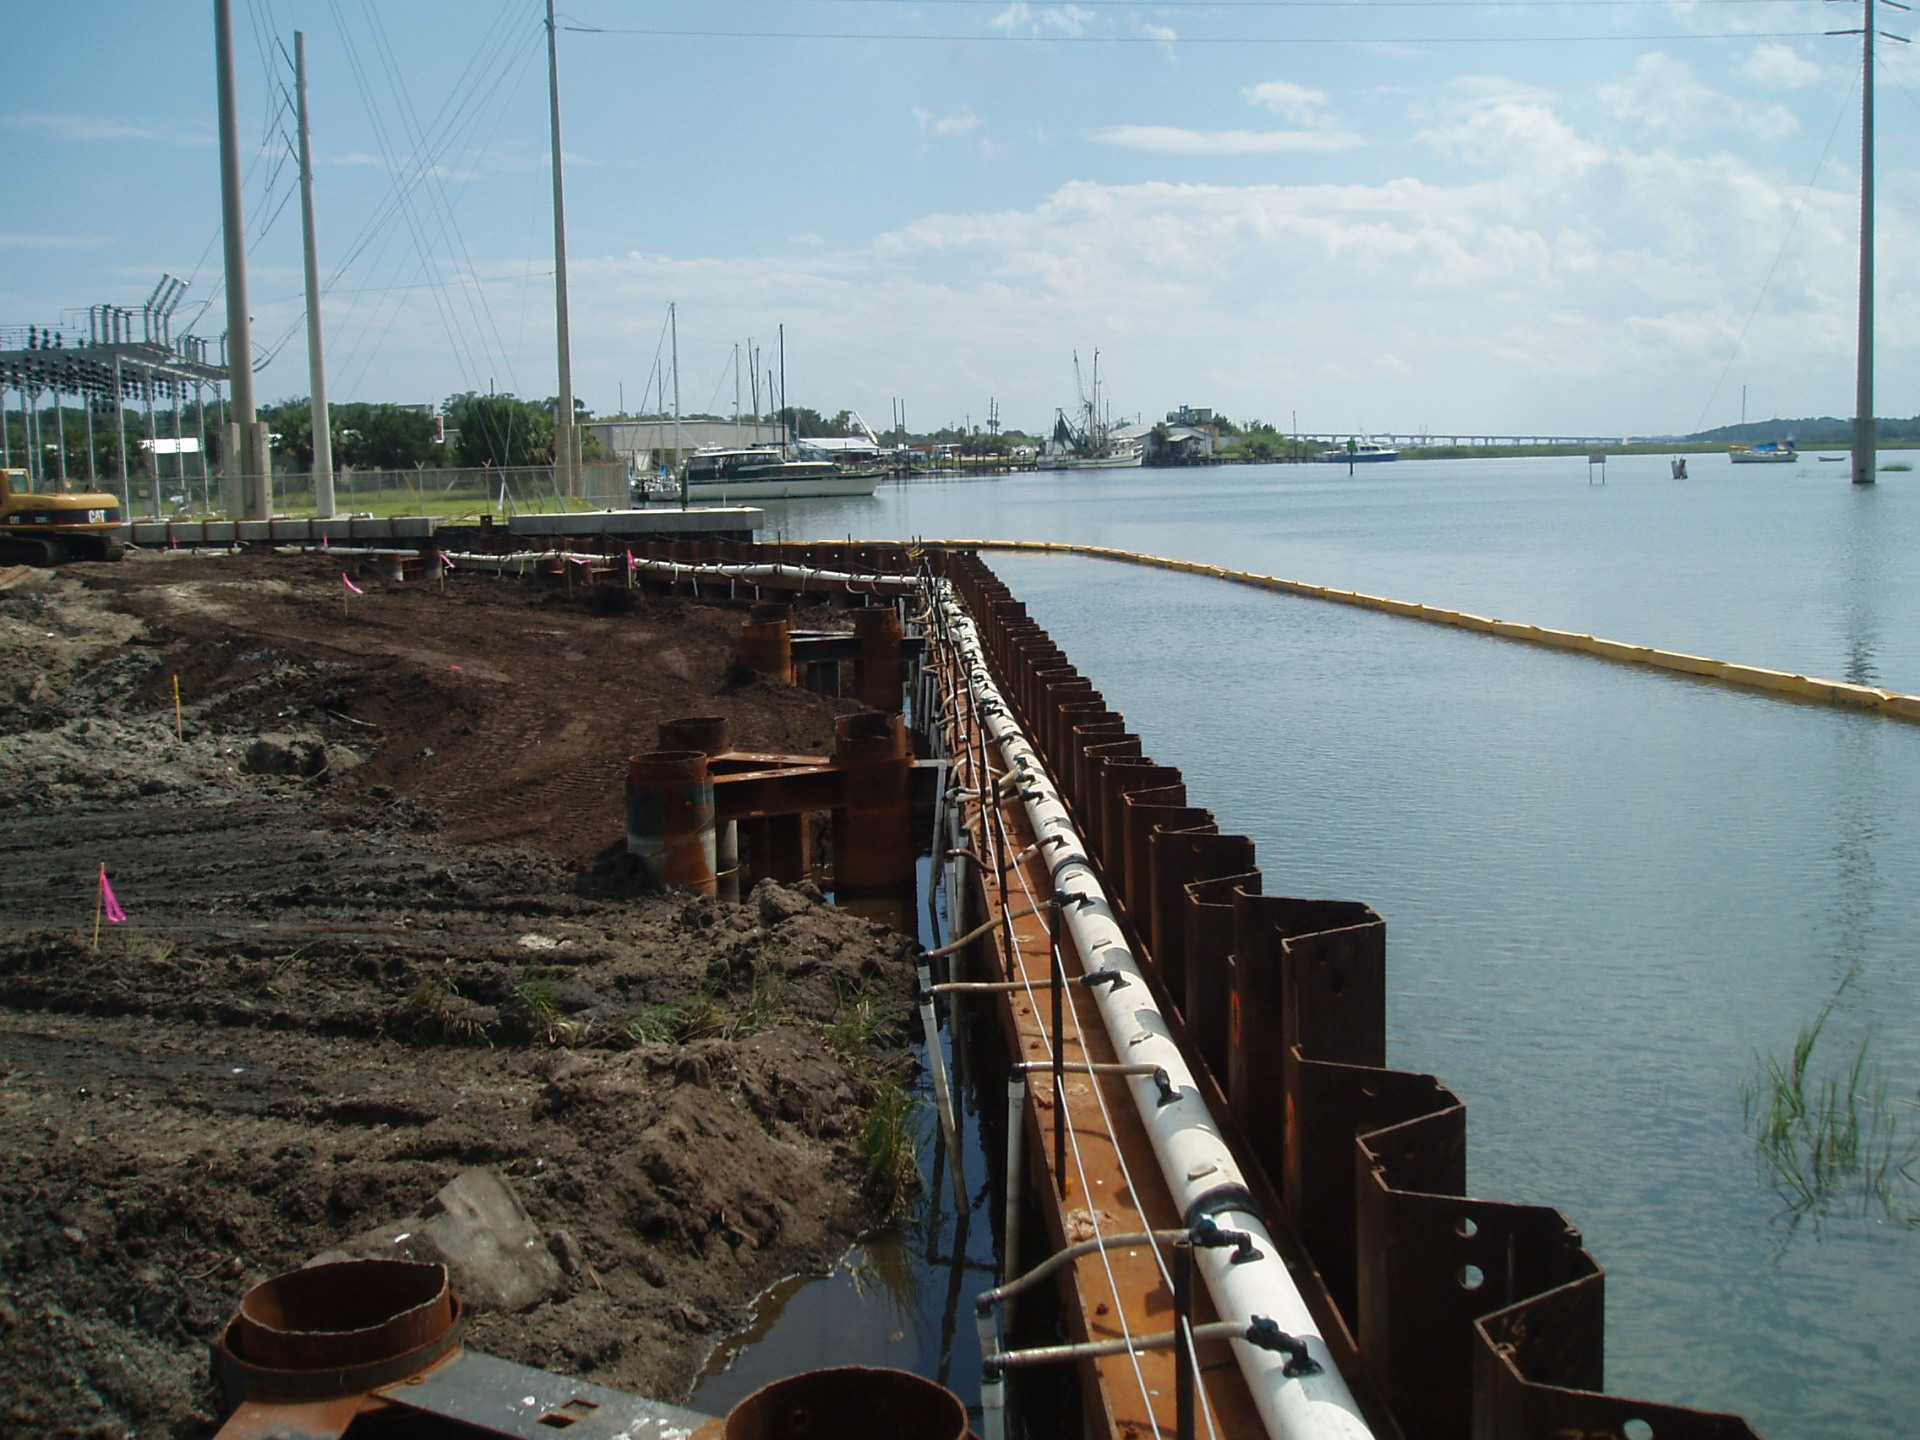 95 Years of Dewatering Experience